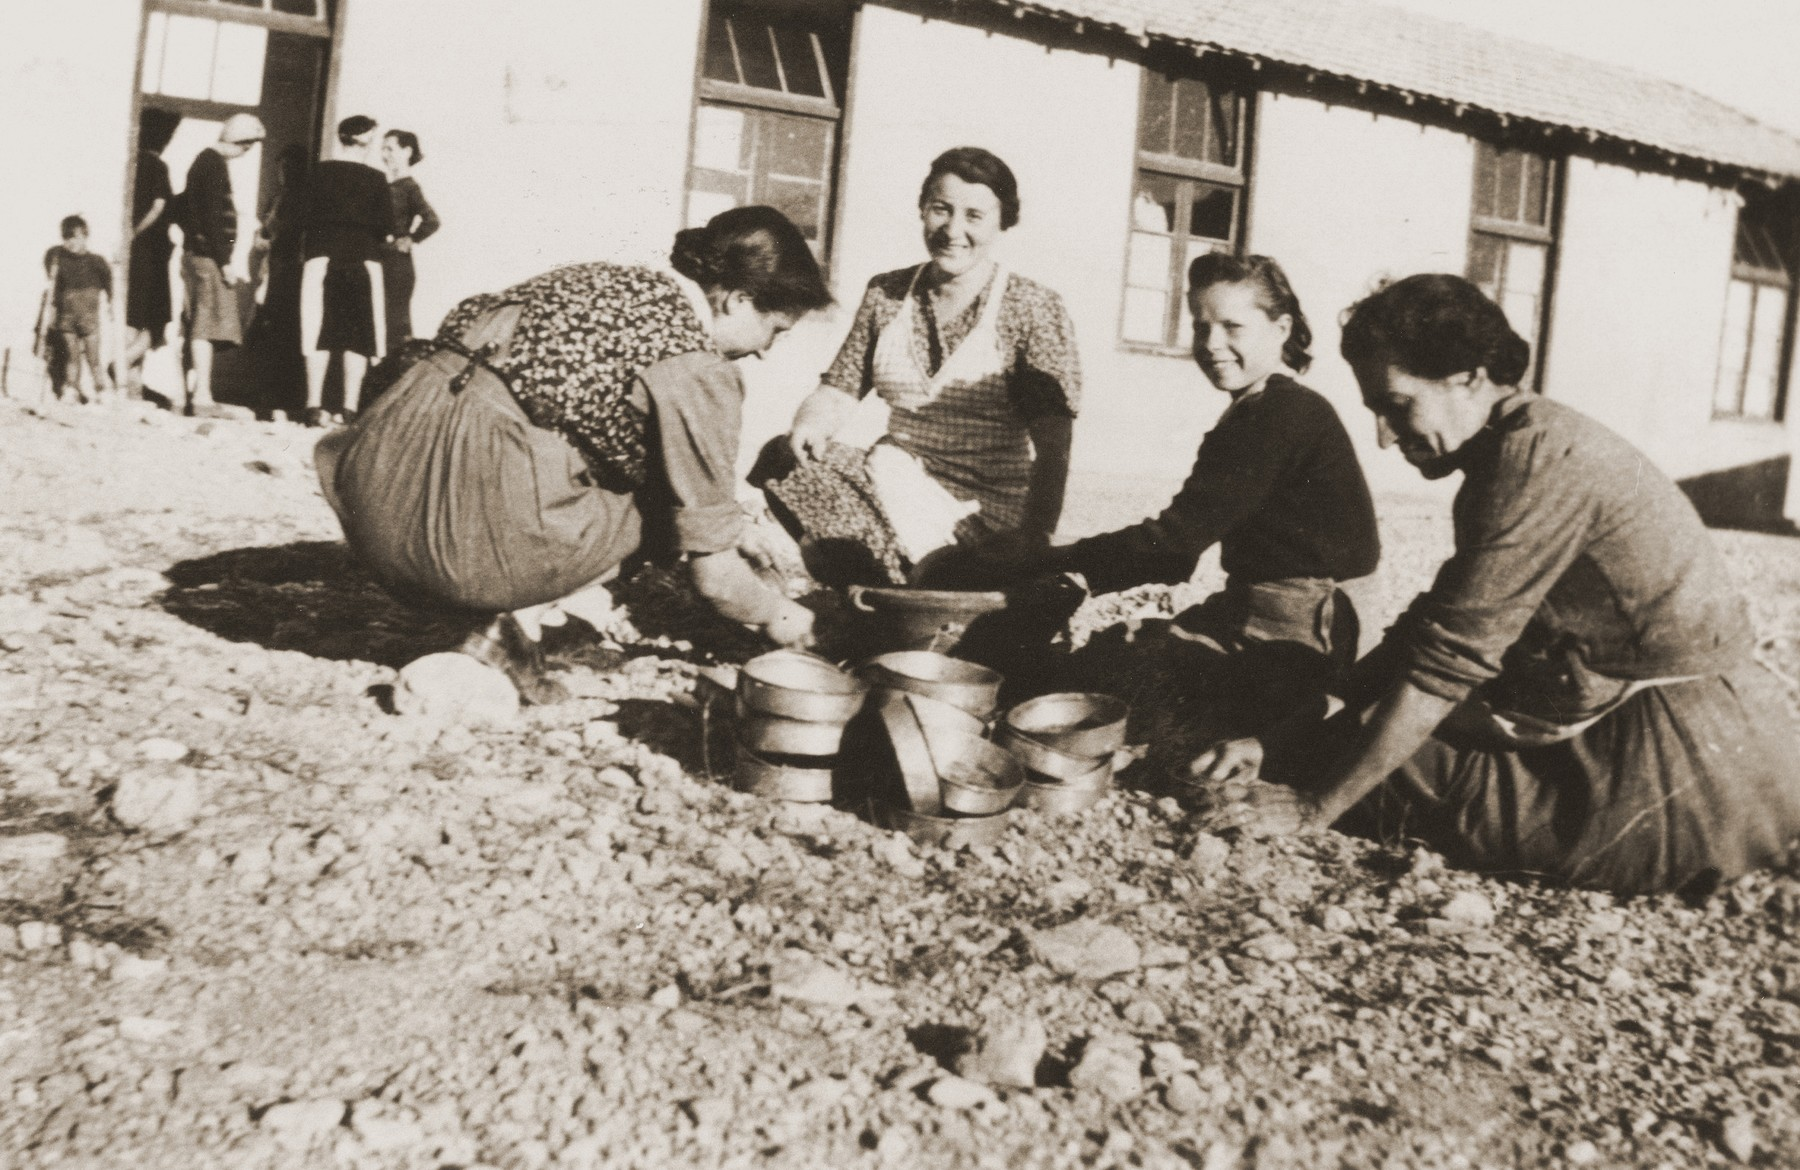 Secours Suisse aux enfants relief workers clean crockery with sand in the Rivesaltes internment camp.